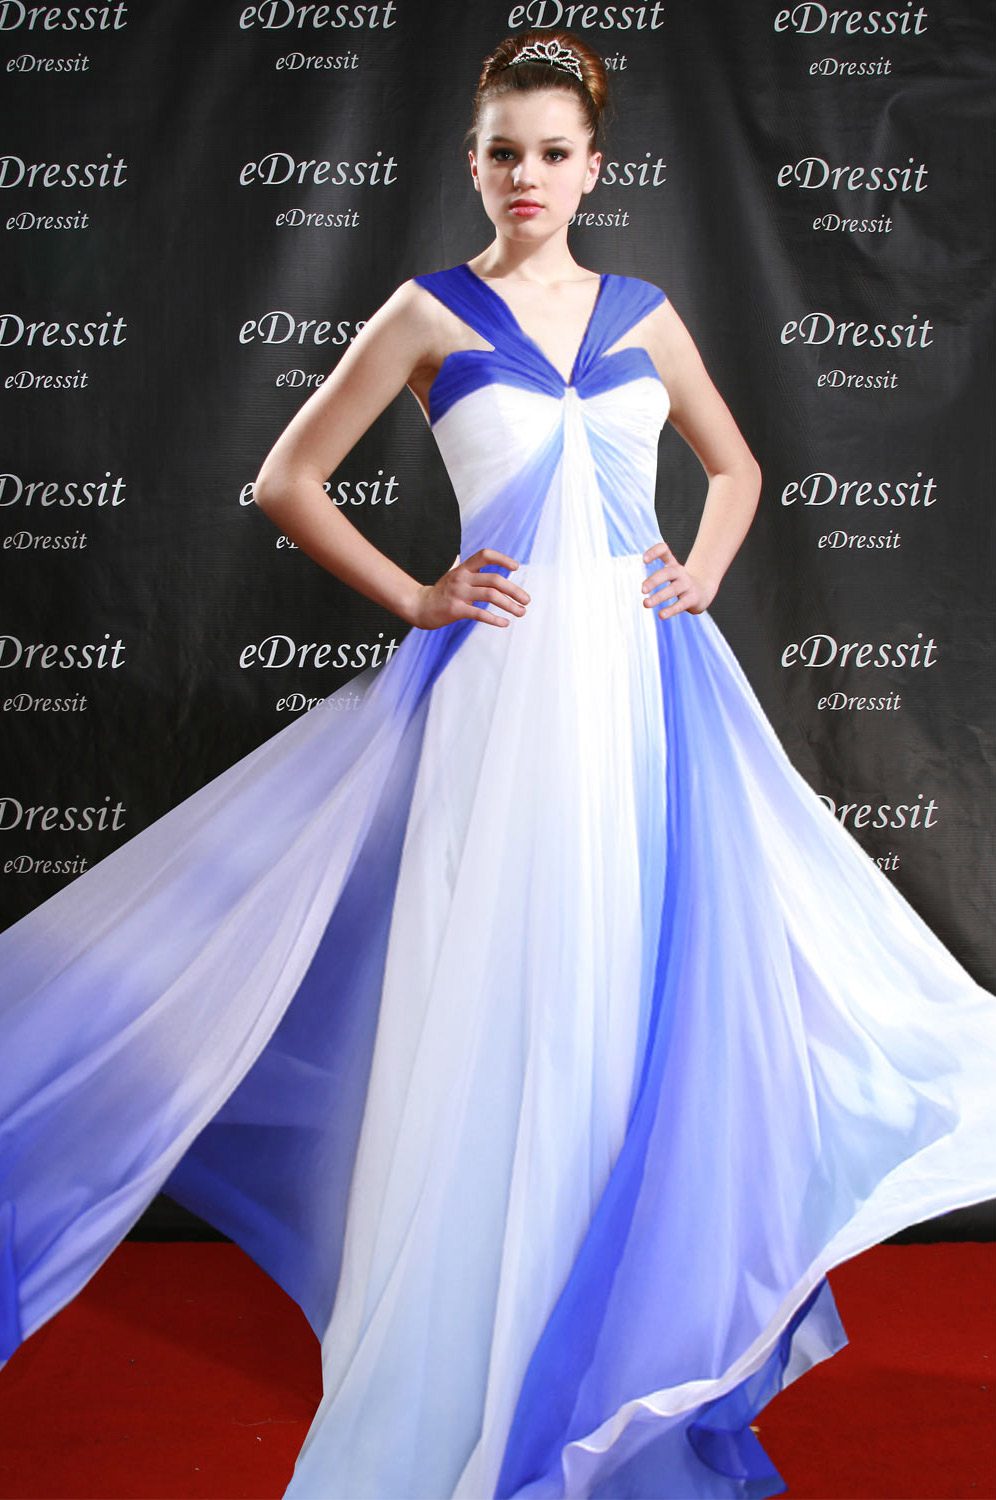 eDressit Evening Dress-on sale ! new with tags ! (00096156s)